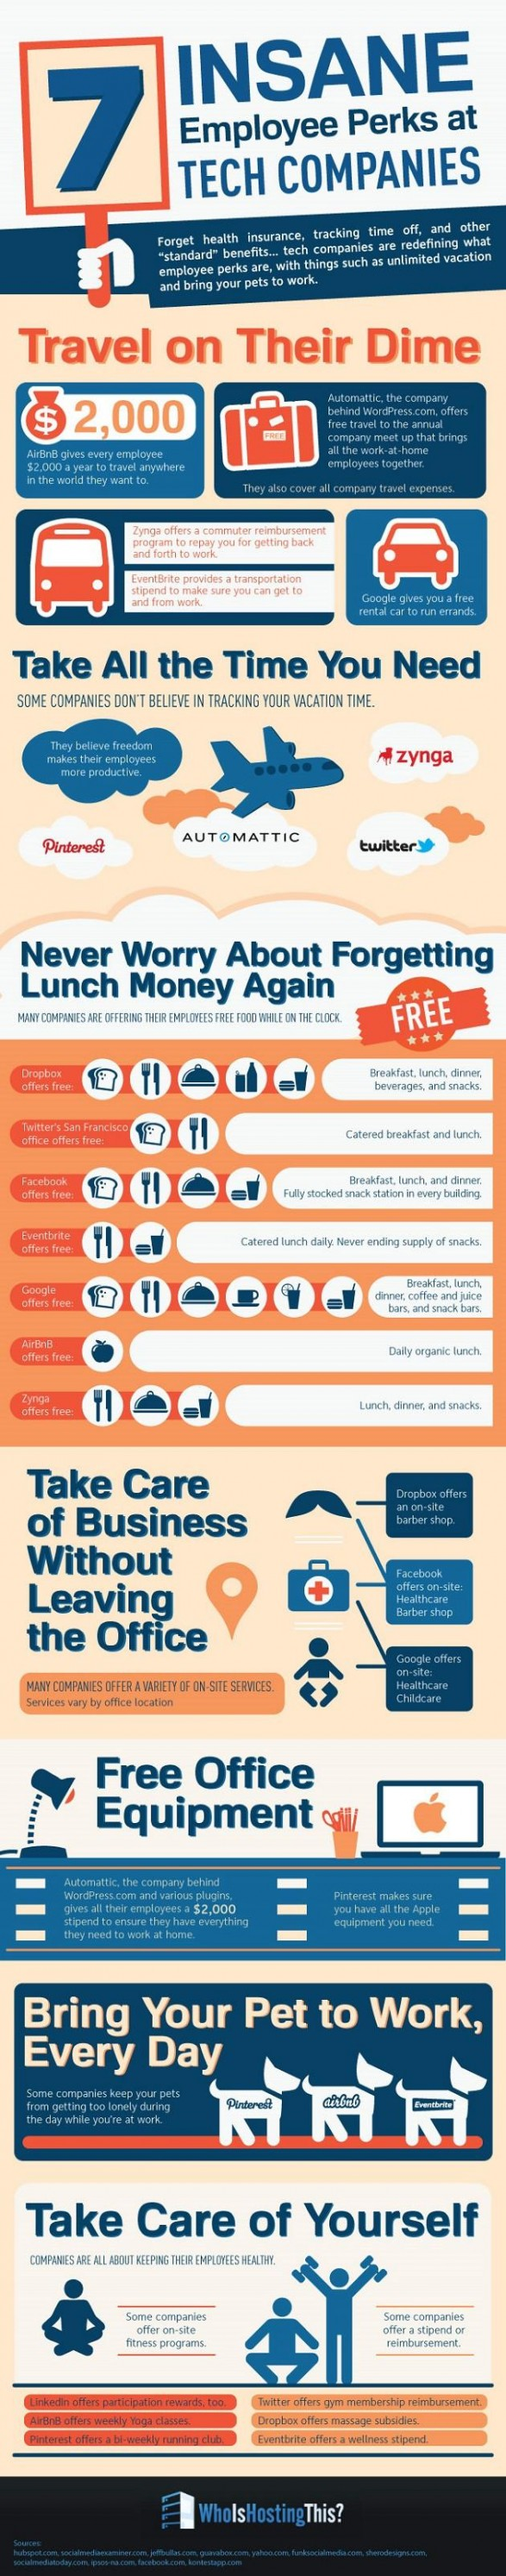 7 Employee Perks At Tech Companies Infographic Employee Perks Company Perks Social Media Infographic